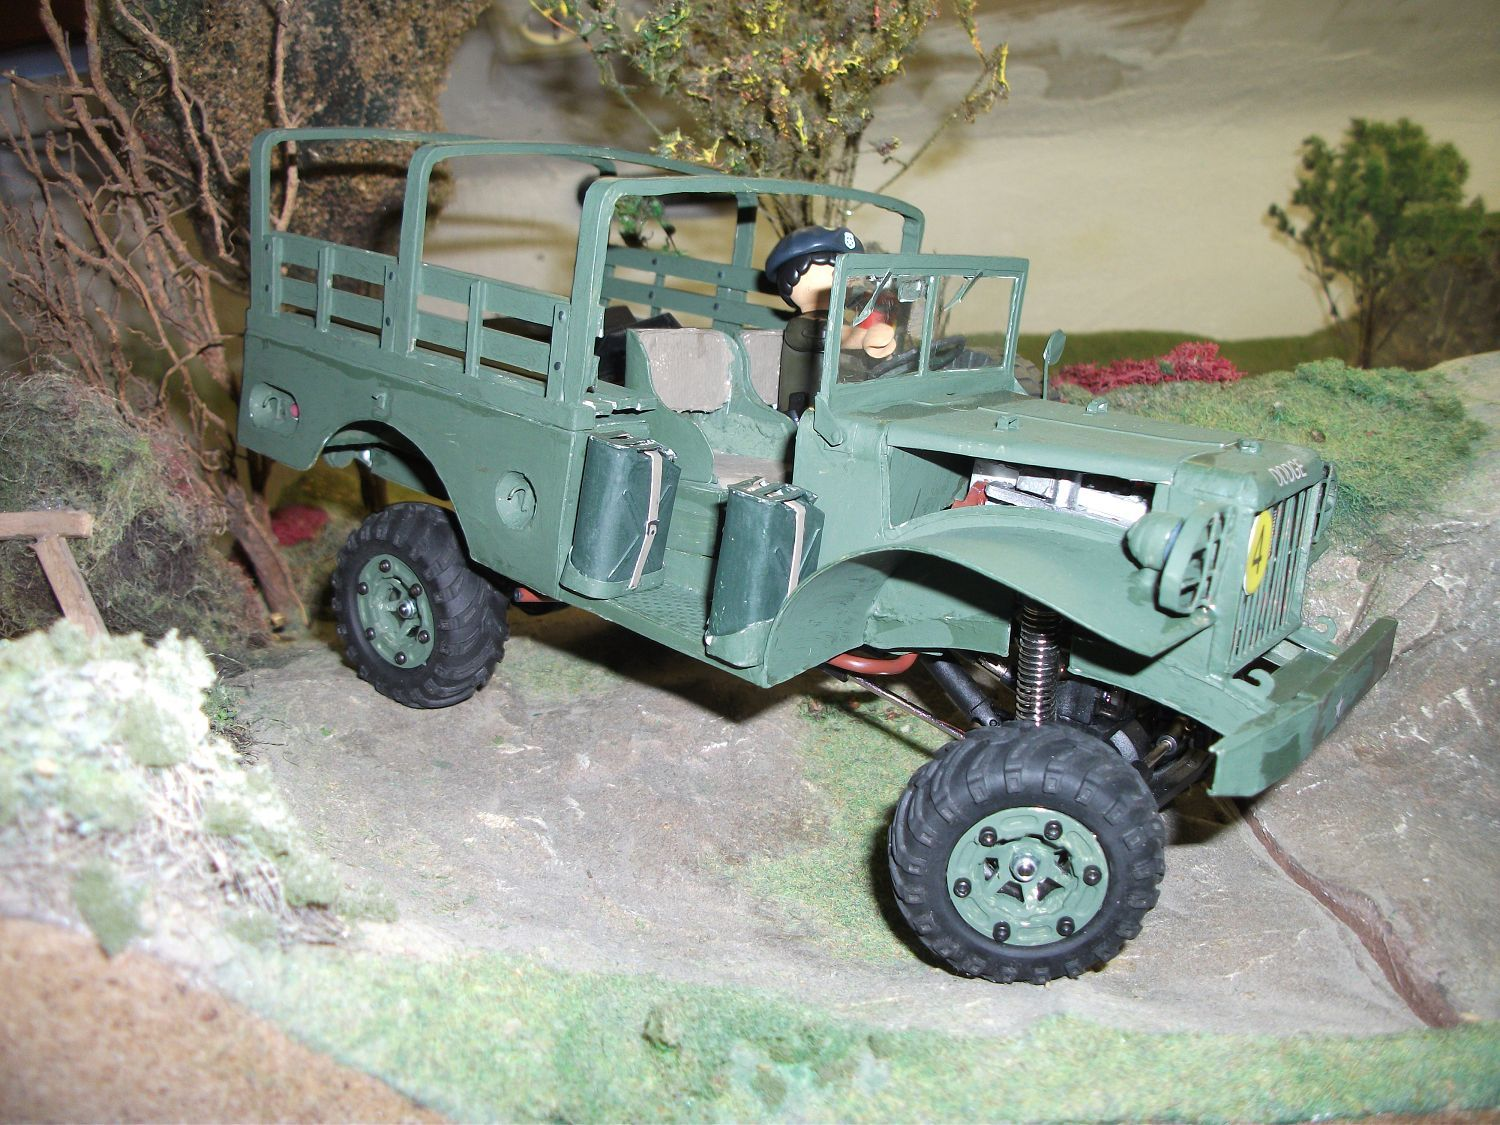 Walter Gindler's Dodge WC 51 RC-Kartonmodell 1:18